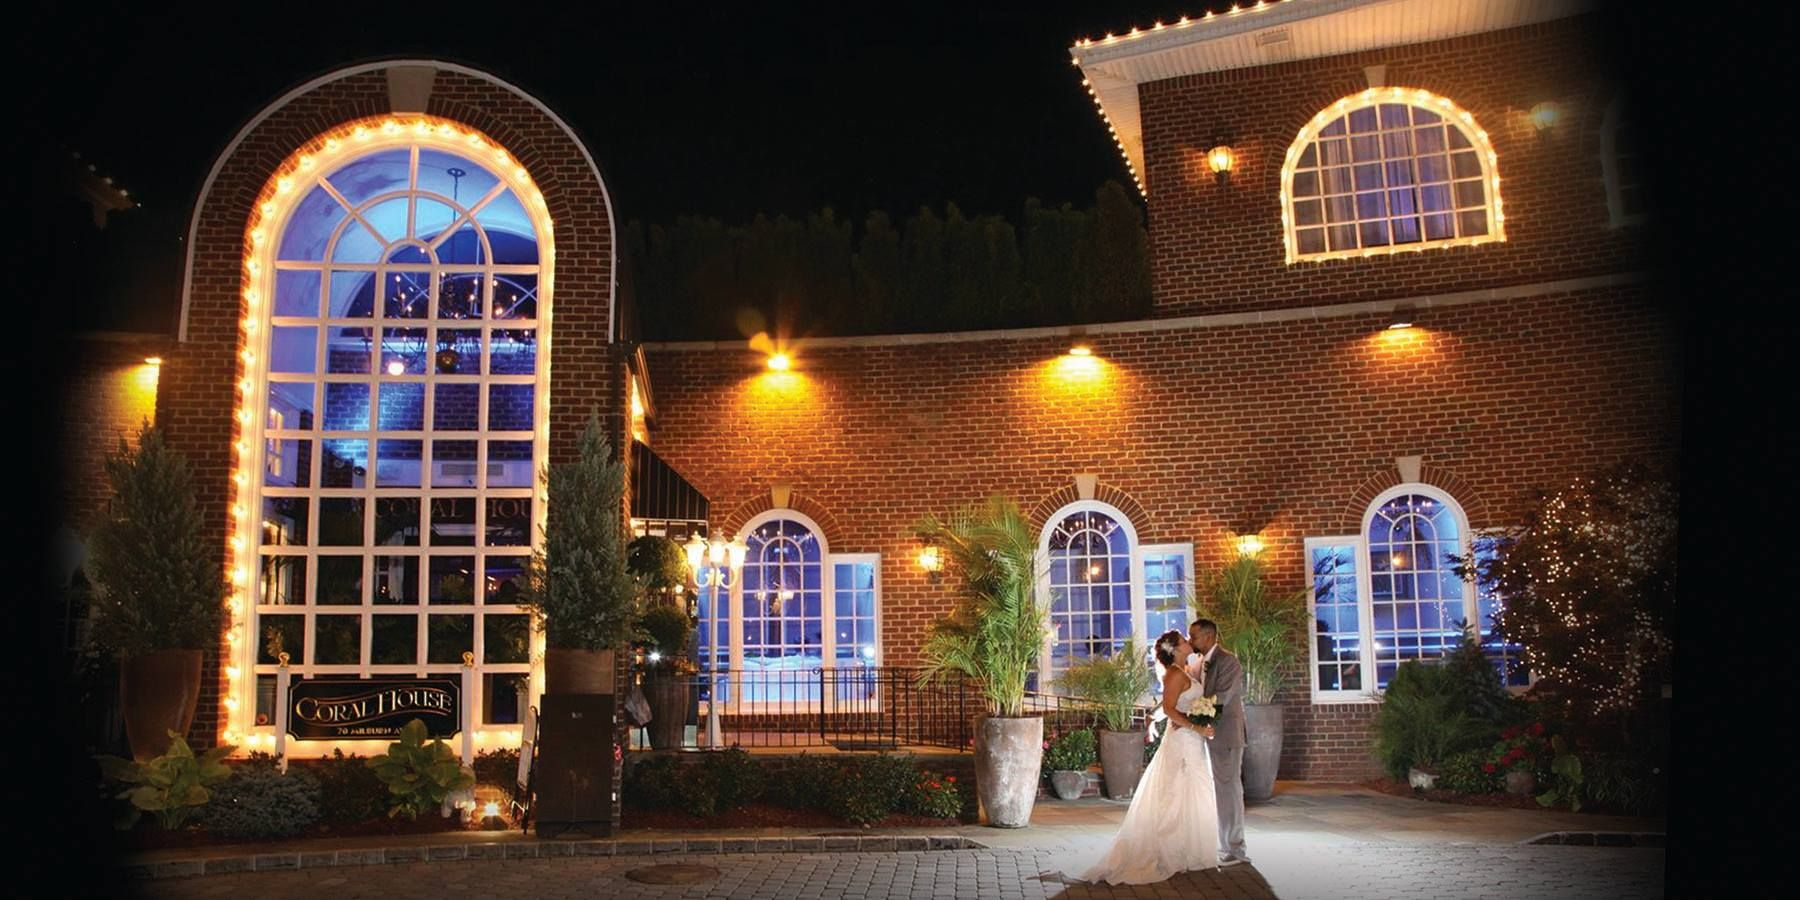 coral house long island ny catering halls weddings venues